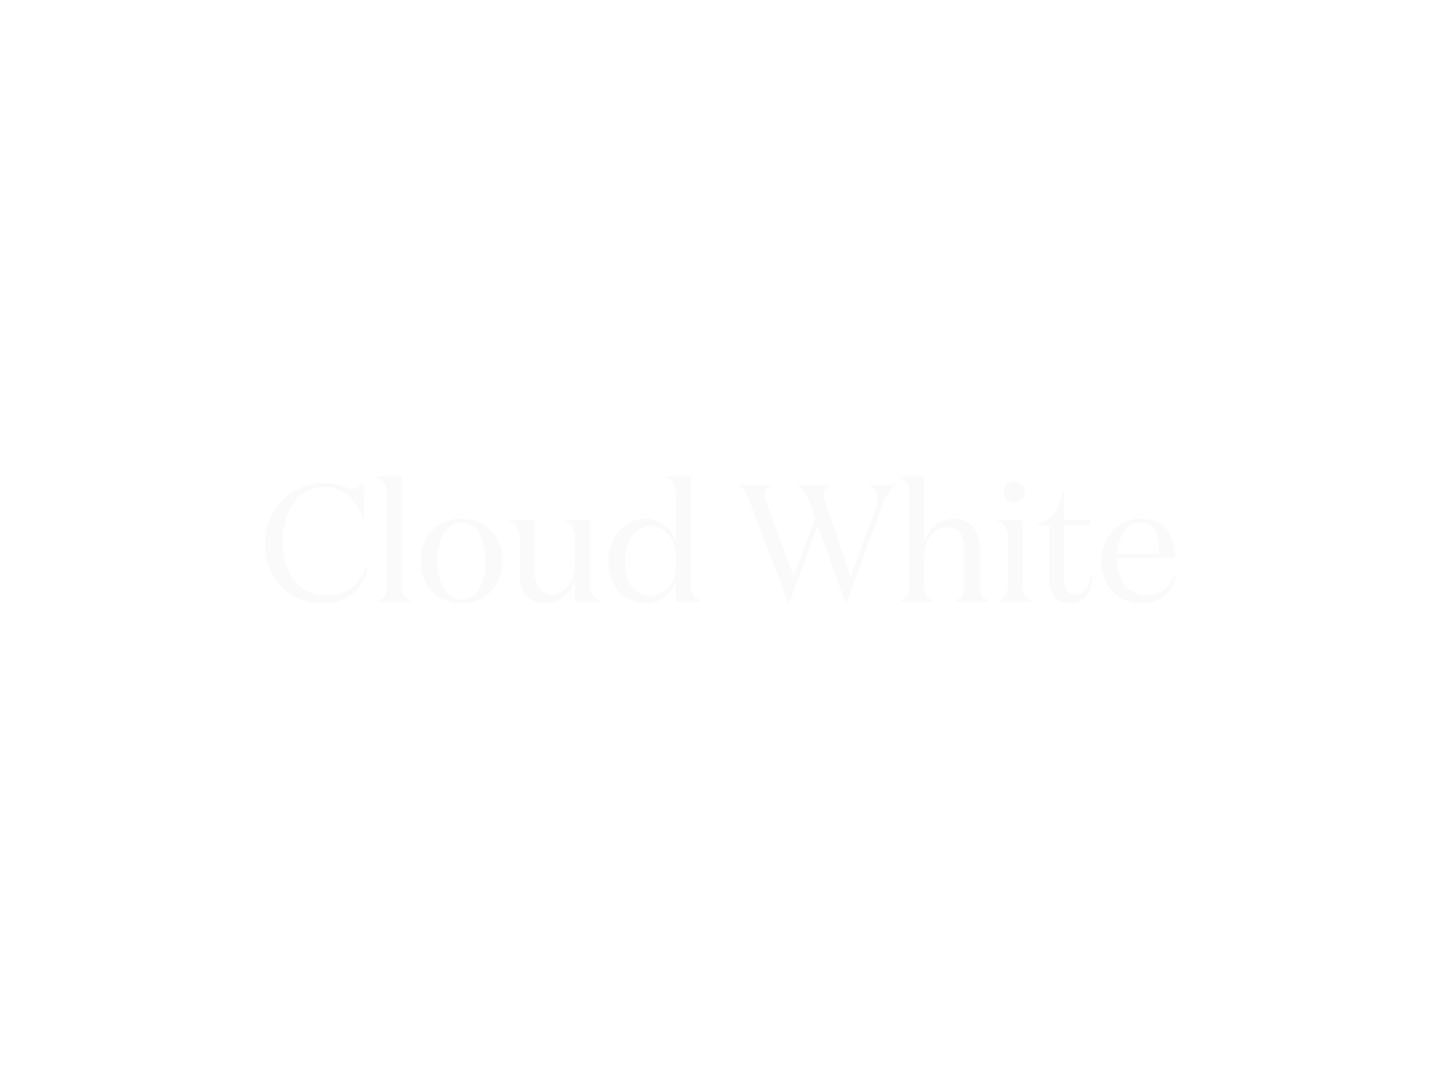 Underlakan Lind - Cloud White